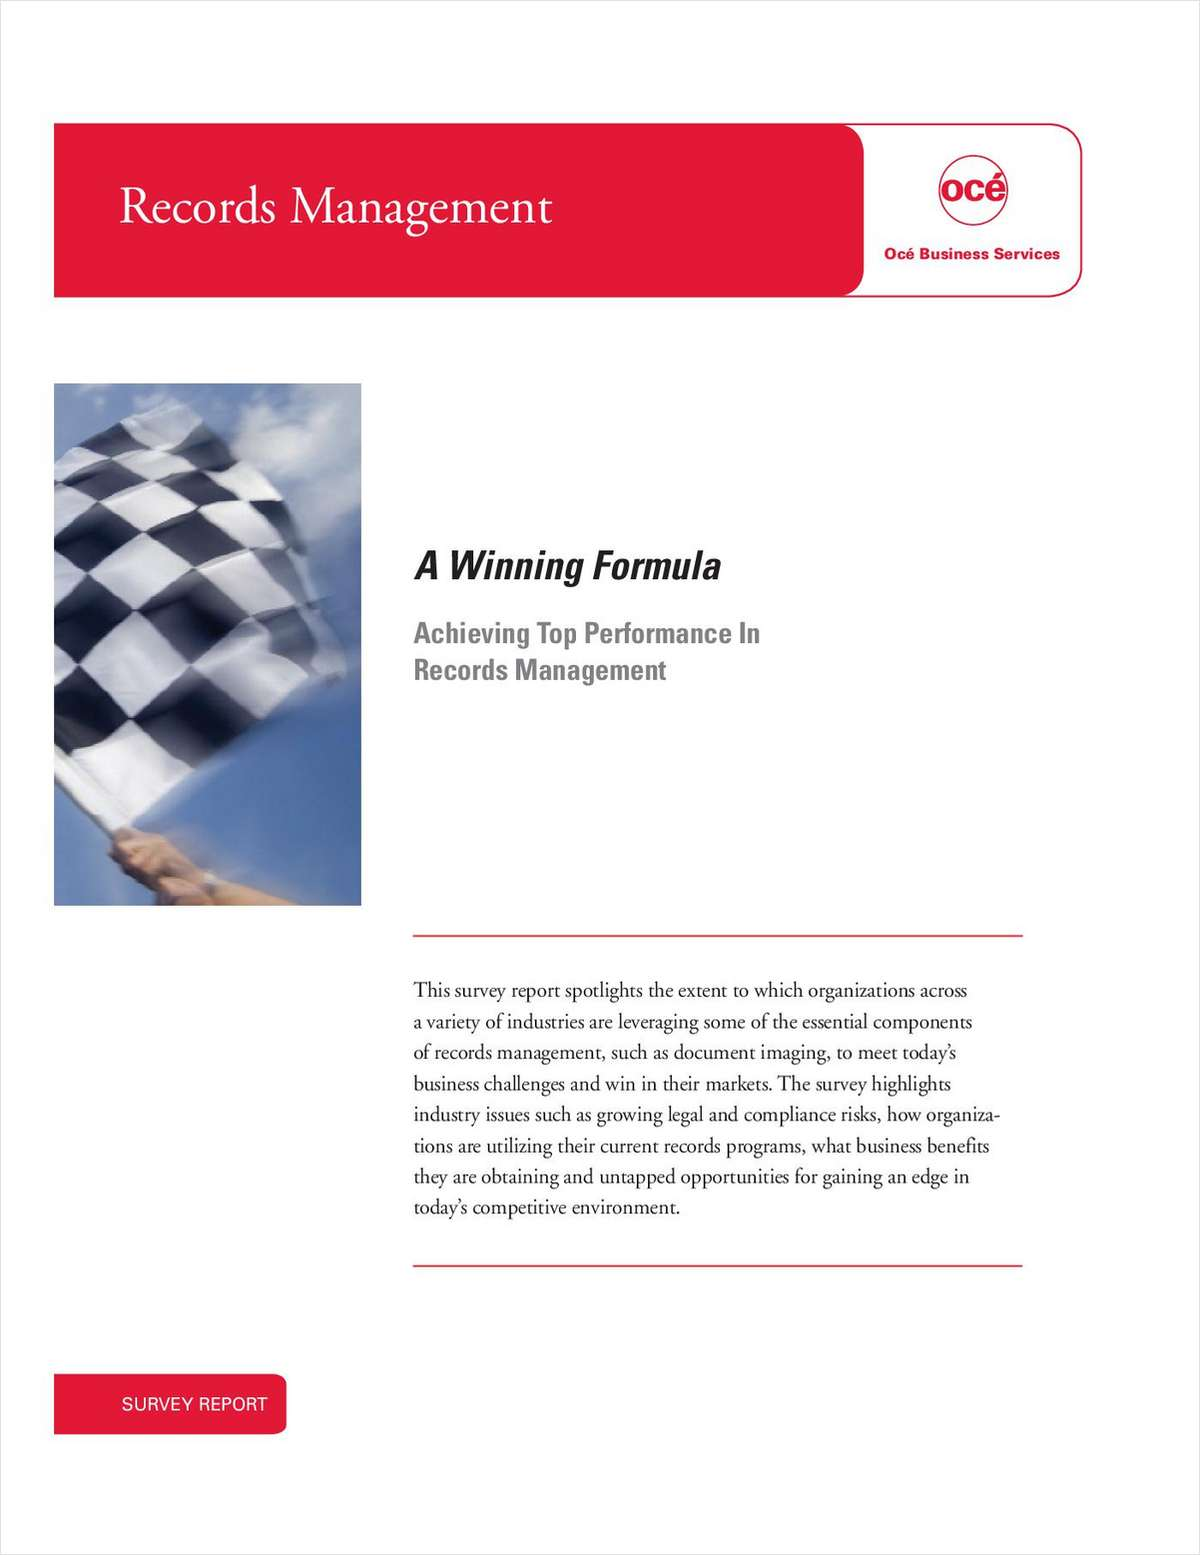 A Winning Formula: Achieving Top Performance In Records Management